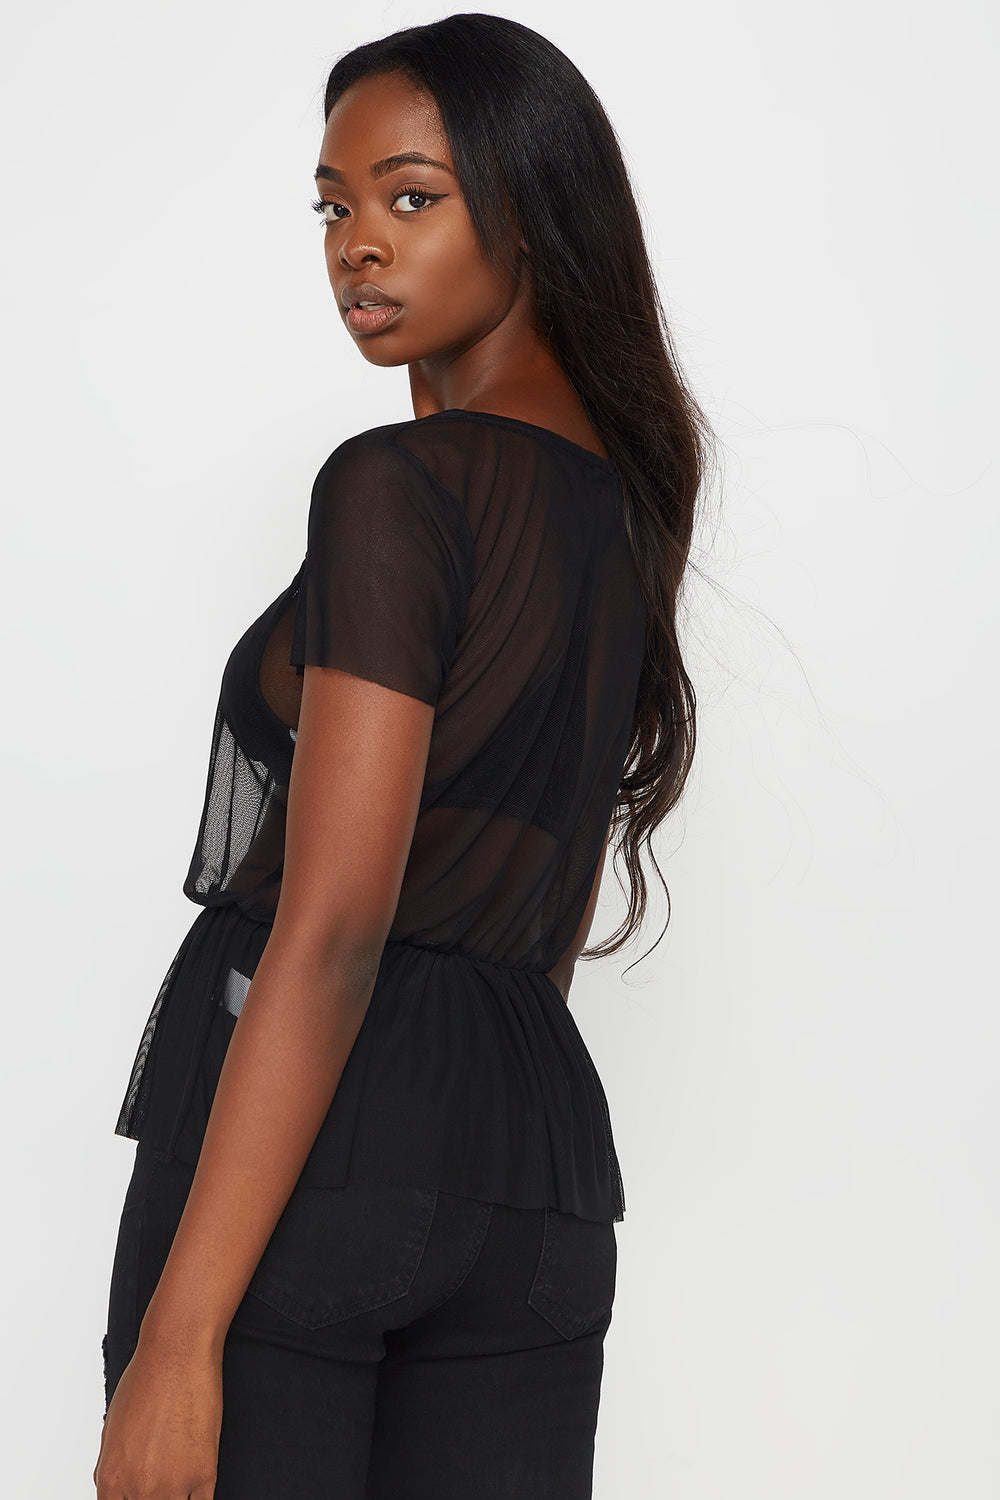 Black Mesh V-Neck Peplum Babydoll Top Black